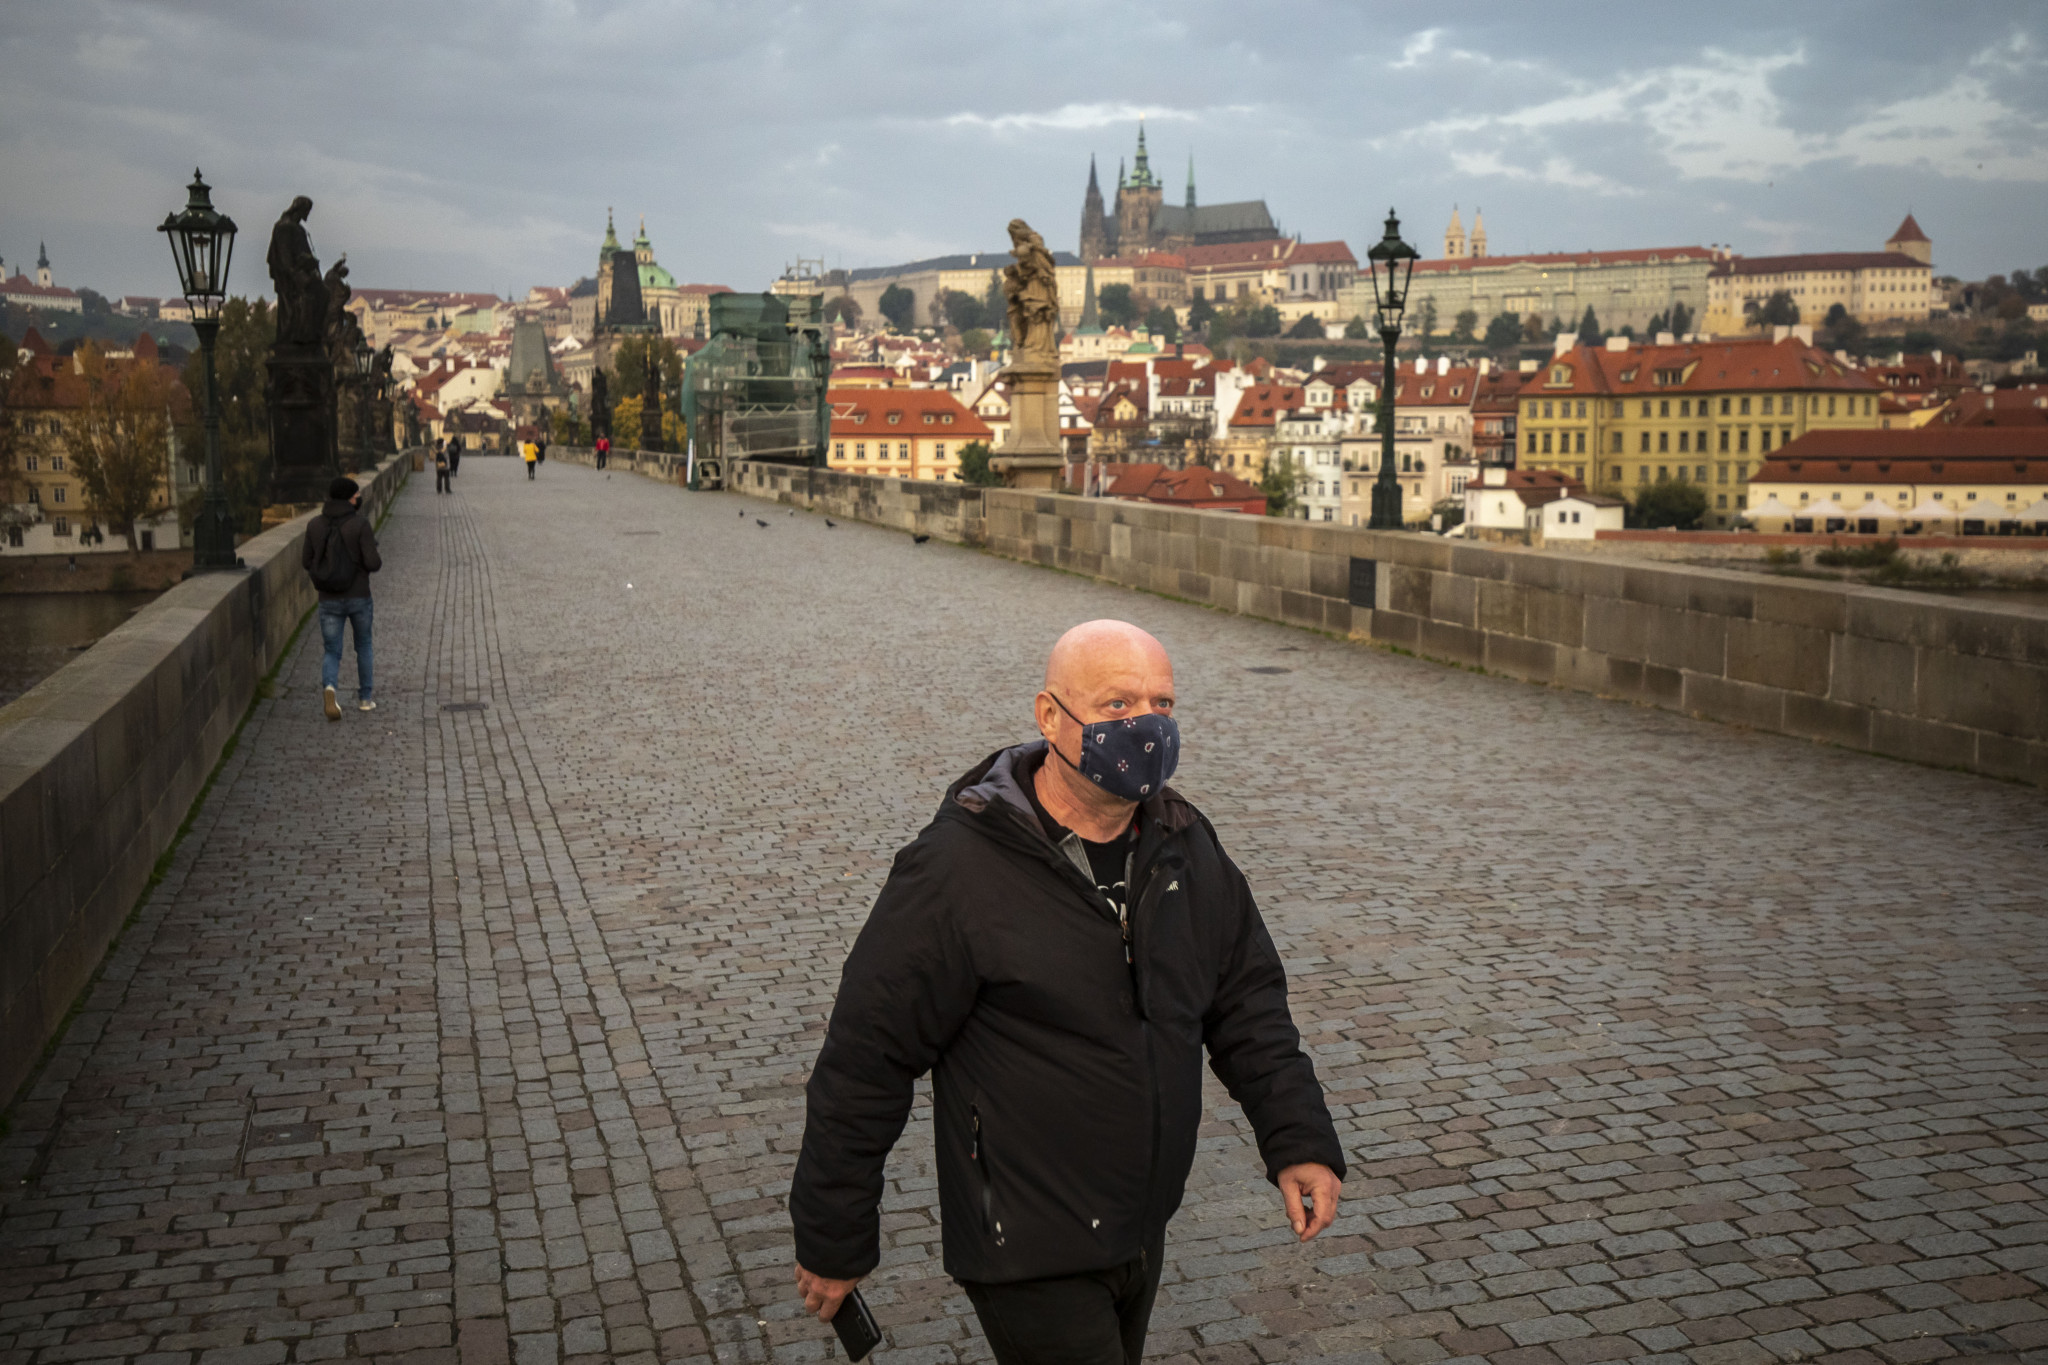 Prague has experienced an extreme rise in COVID-19 cases over the past month ©Getty Images